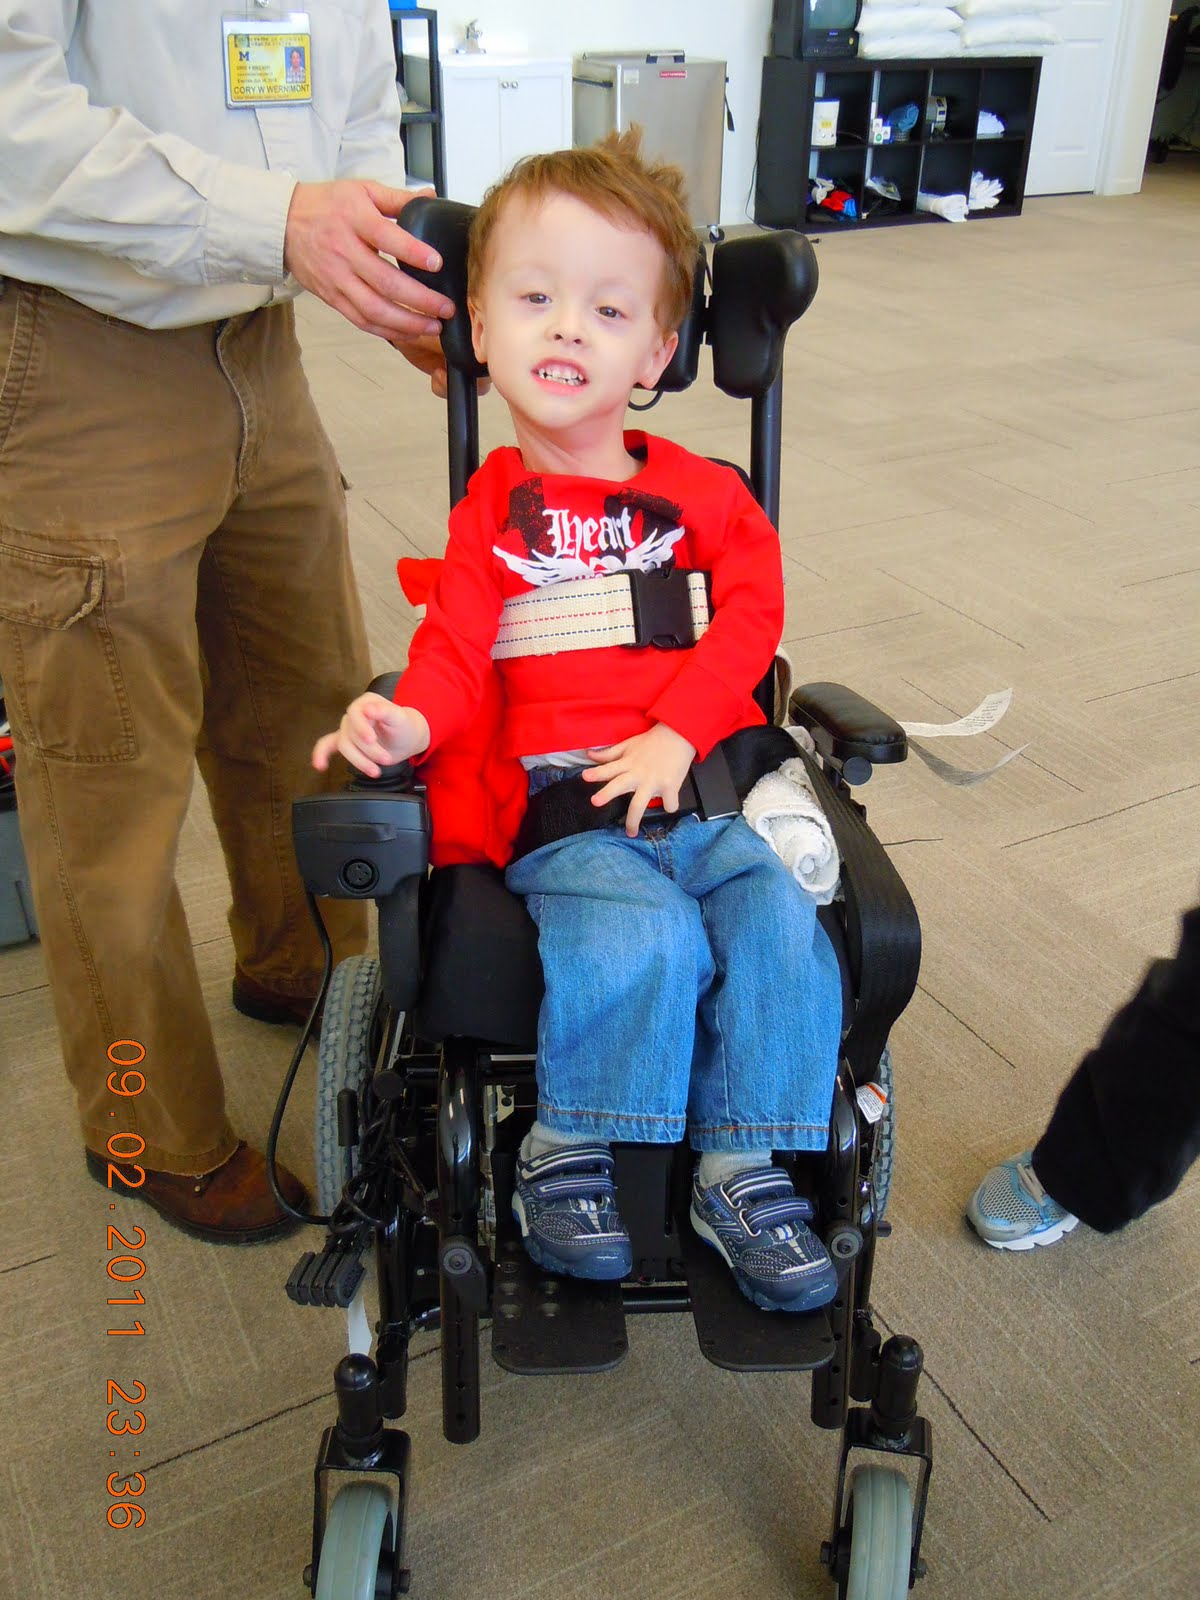 Power wheelchair kids - He Is Really Getting The Hang Of His Power Wheelchair We Should Have It In About 3 Months So Now We Are On The Look Out For A